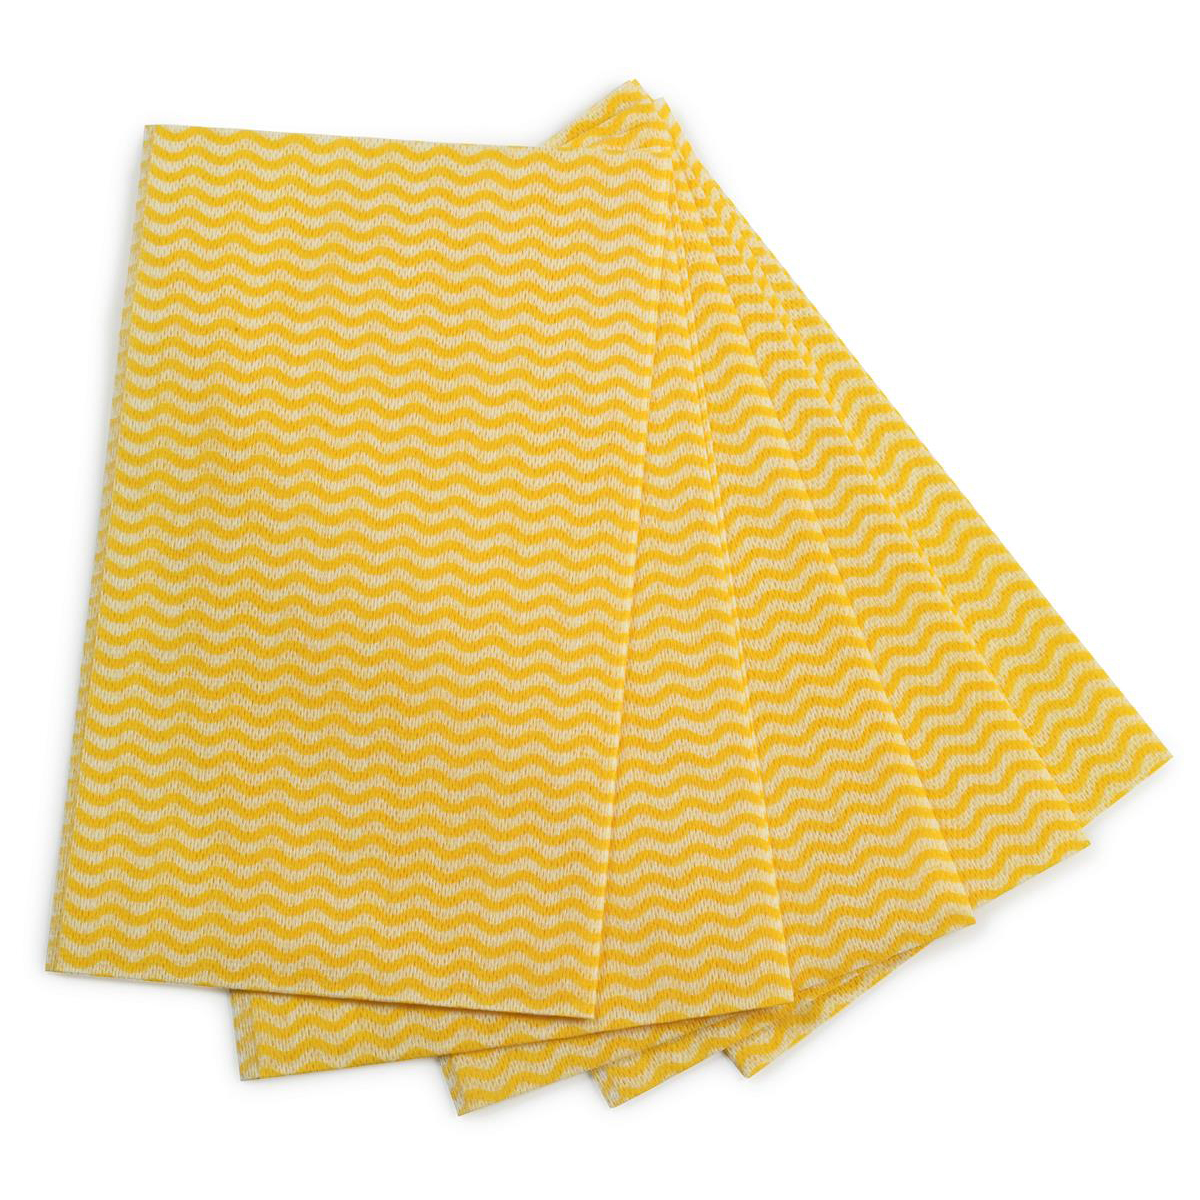 5 Star Facilities Cleaning Cloths Anti-microbial 40gsm W500xL300mm Wavy Line Yellow Pack 50